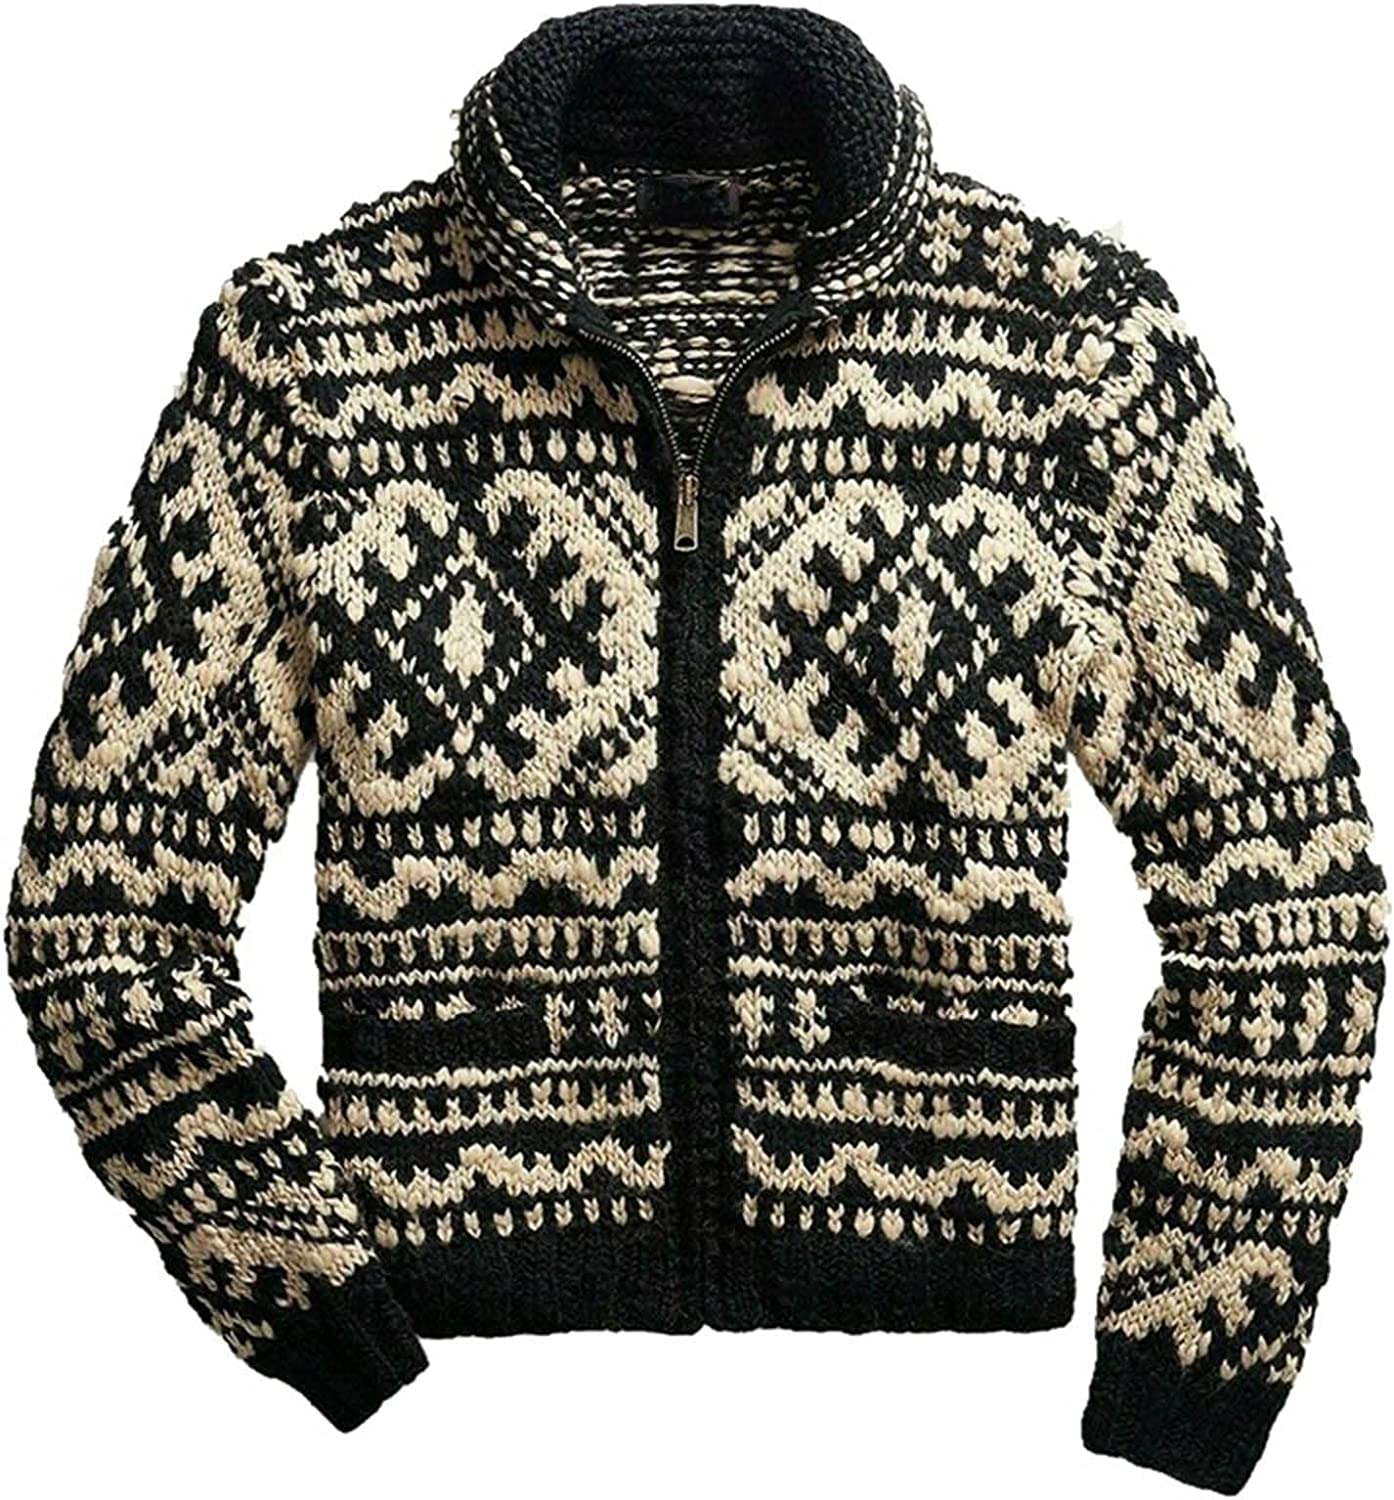 Huangse Mens Argyle Print Sweater Casual Full Zip Knitted Cardigan Stripe Sweaters Stand Collar Open Front Cardigan